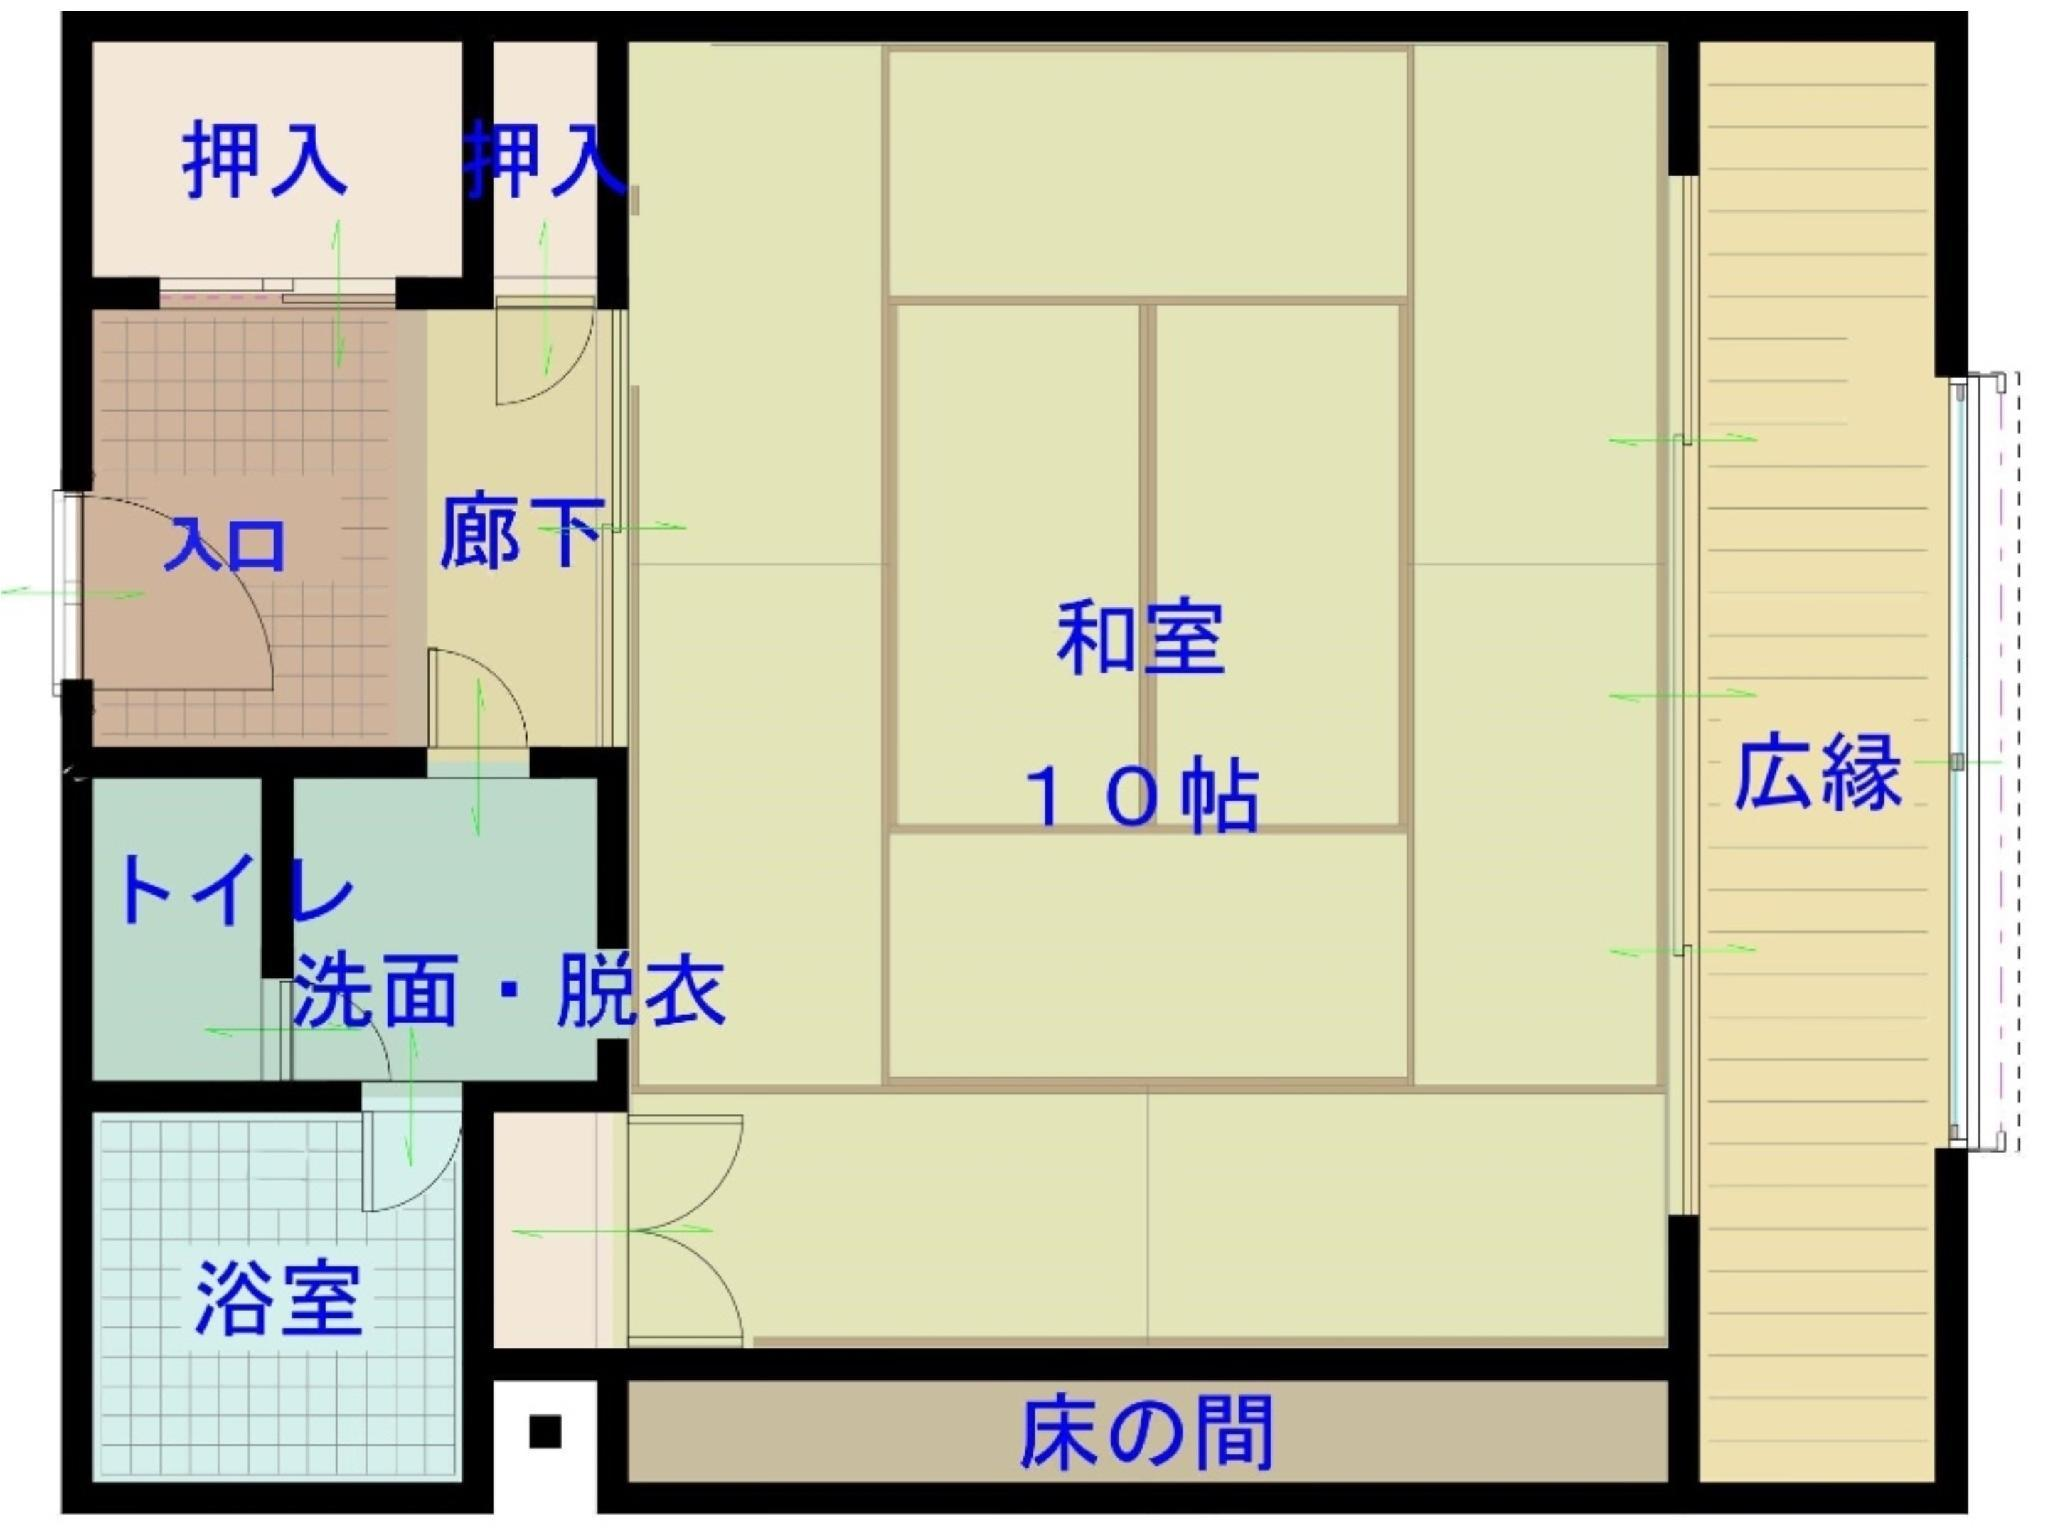 다다미 객실(서관) *2020년 4월부터 금연 (Japanese-style Room (West Wing) *Non-smoking from Apr. 2020)